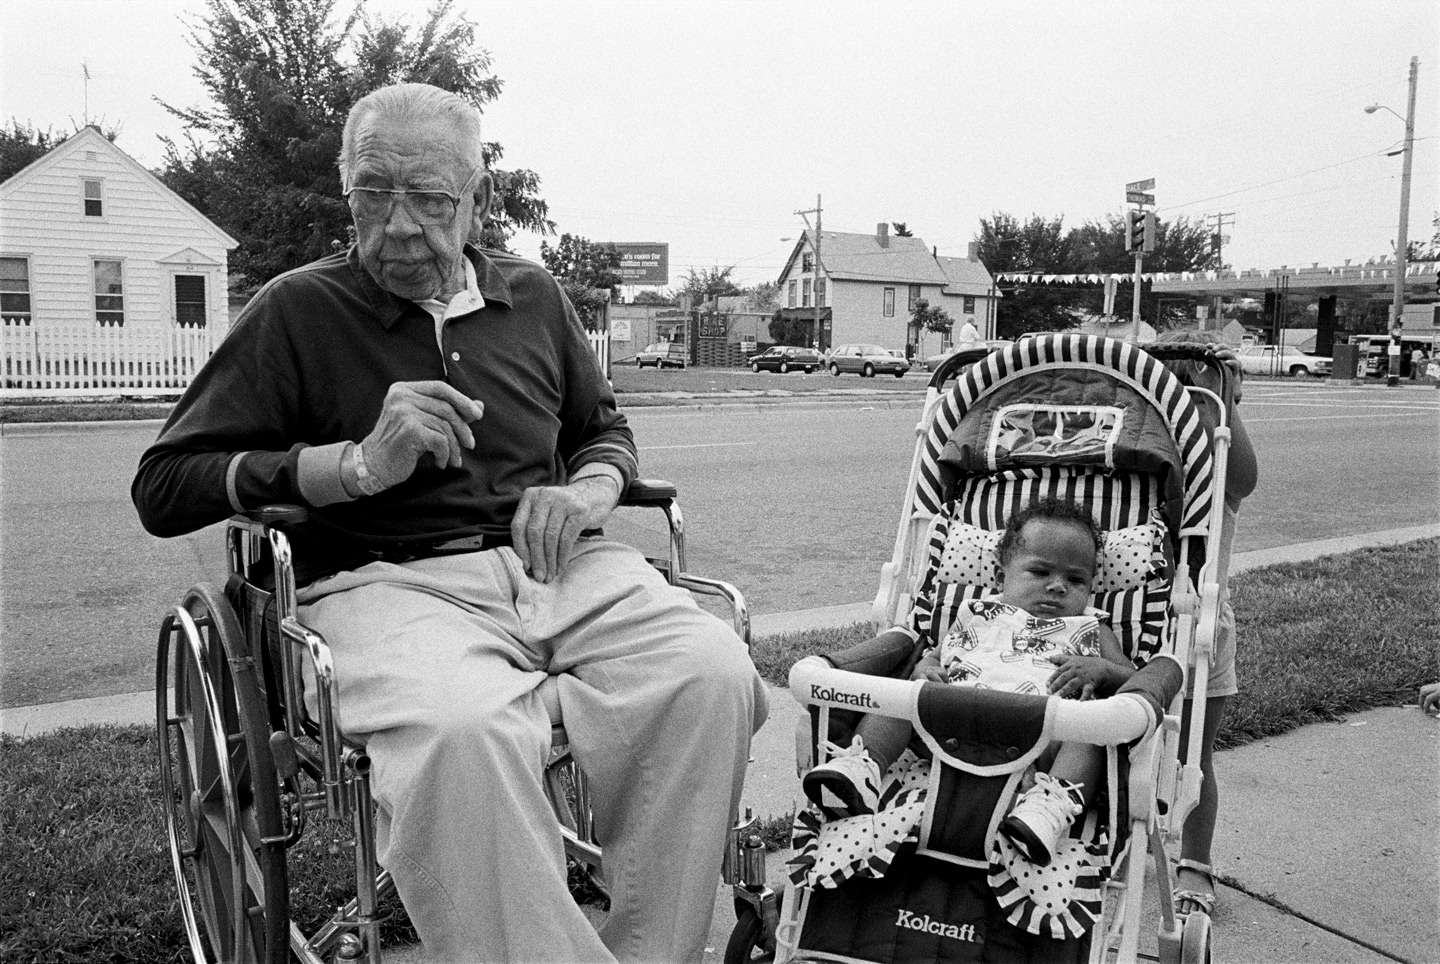 An old man in a wheelchair sits next to a baby in a stroller